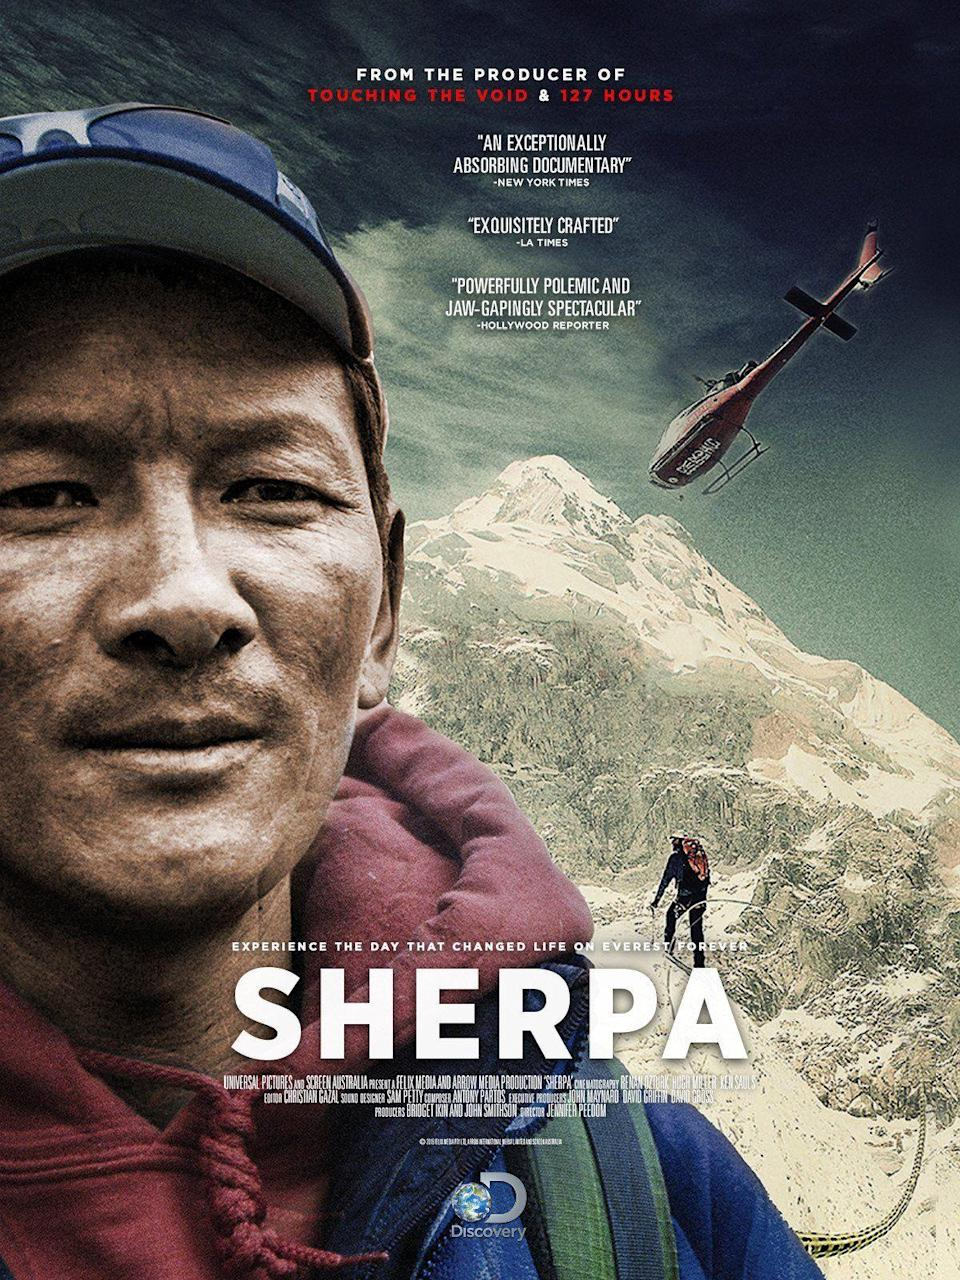 """<p>Climbers have attempted to ascend Mount Everest (at times, on the literal backs of local Sherpas) for almost one hundred years. The British made the first attempt in 1922, but the expedition ended fatally for seven Sherpa climbers. It wasn't until 1953 that the first climbers reached the summit—Englishman Edmund Hillary and Nepali Sherpa Tenzing Norgay. Hillary and expedition leader John Hunt were immediately knighted on their return to England. Norgay, who had nearly reached the summit the previous year with a Swiss team, was not.</p><p>Since the first attempt in 1922, <a href=""""https://outdoorinquirer.com/mount-everest-deaths/"""" rel=""""nofollow noopener"""" target=""""_blank"""" data-ylk=""""slk:over 300 people have died"""" class=""""link rapid-noclick-resp"""">over 300 people have died</a> attempting to summit. It is estimated that <a href=""""https://www.npr.org/sections/parallels/2018/04/14/599417489/one-third-of-everest-deaths-are-sherpa-climbers"""" rel=""""nofollow noopener"""" target=""""_blank"""" data-ylk=""""slk:nearly a third of all fatalities are local Sherpas"""" class=""""link rapid-noclick-resp"""">nearly a third of all fatalities are local Sherpas</a>, with Americans, who represent the majority nationality of Everest climbers, accounting for thirteen deaths. In recent years, the heroic glory of the climb has been reframed, and those """"solo"""" adventurers risking all to conquer nature have been shown to owe much of their success to Sherpa labor. </p><p>Film has likewise adjusted its portrayal of Everest ascents, with recent documentaries like <em>Sherpa </em>exploring instead the burden on Nepalese communities who rely on the climb—maybe the most dangerous job on earth—for their family income. The climbers, well, let's just say they are no longer the heroes of this story. </p><p>Still, the ascent, for all its social and political inequities, continues to represent one of the major feats of human achievement. Here are the top movies about Everest, representing mankind's best, worst, and most exploitativ"""